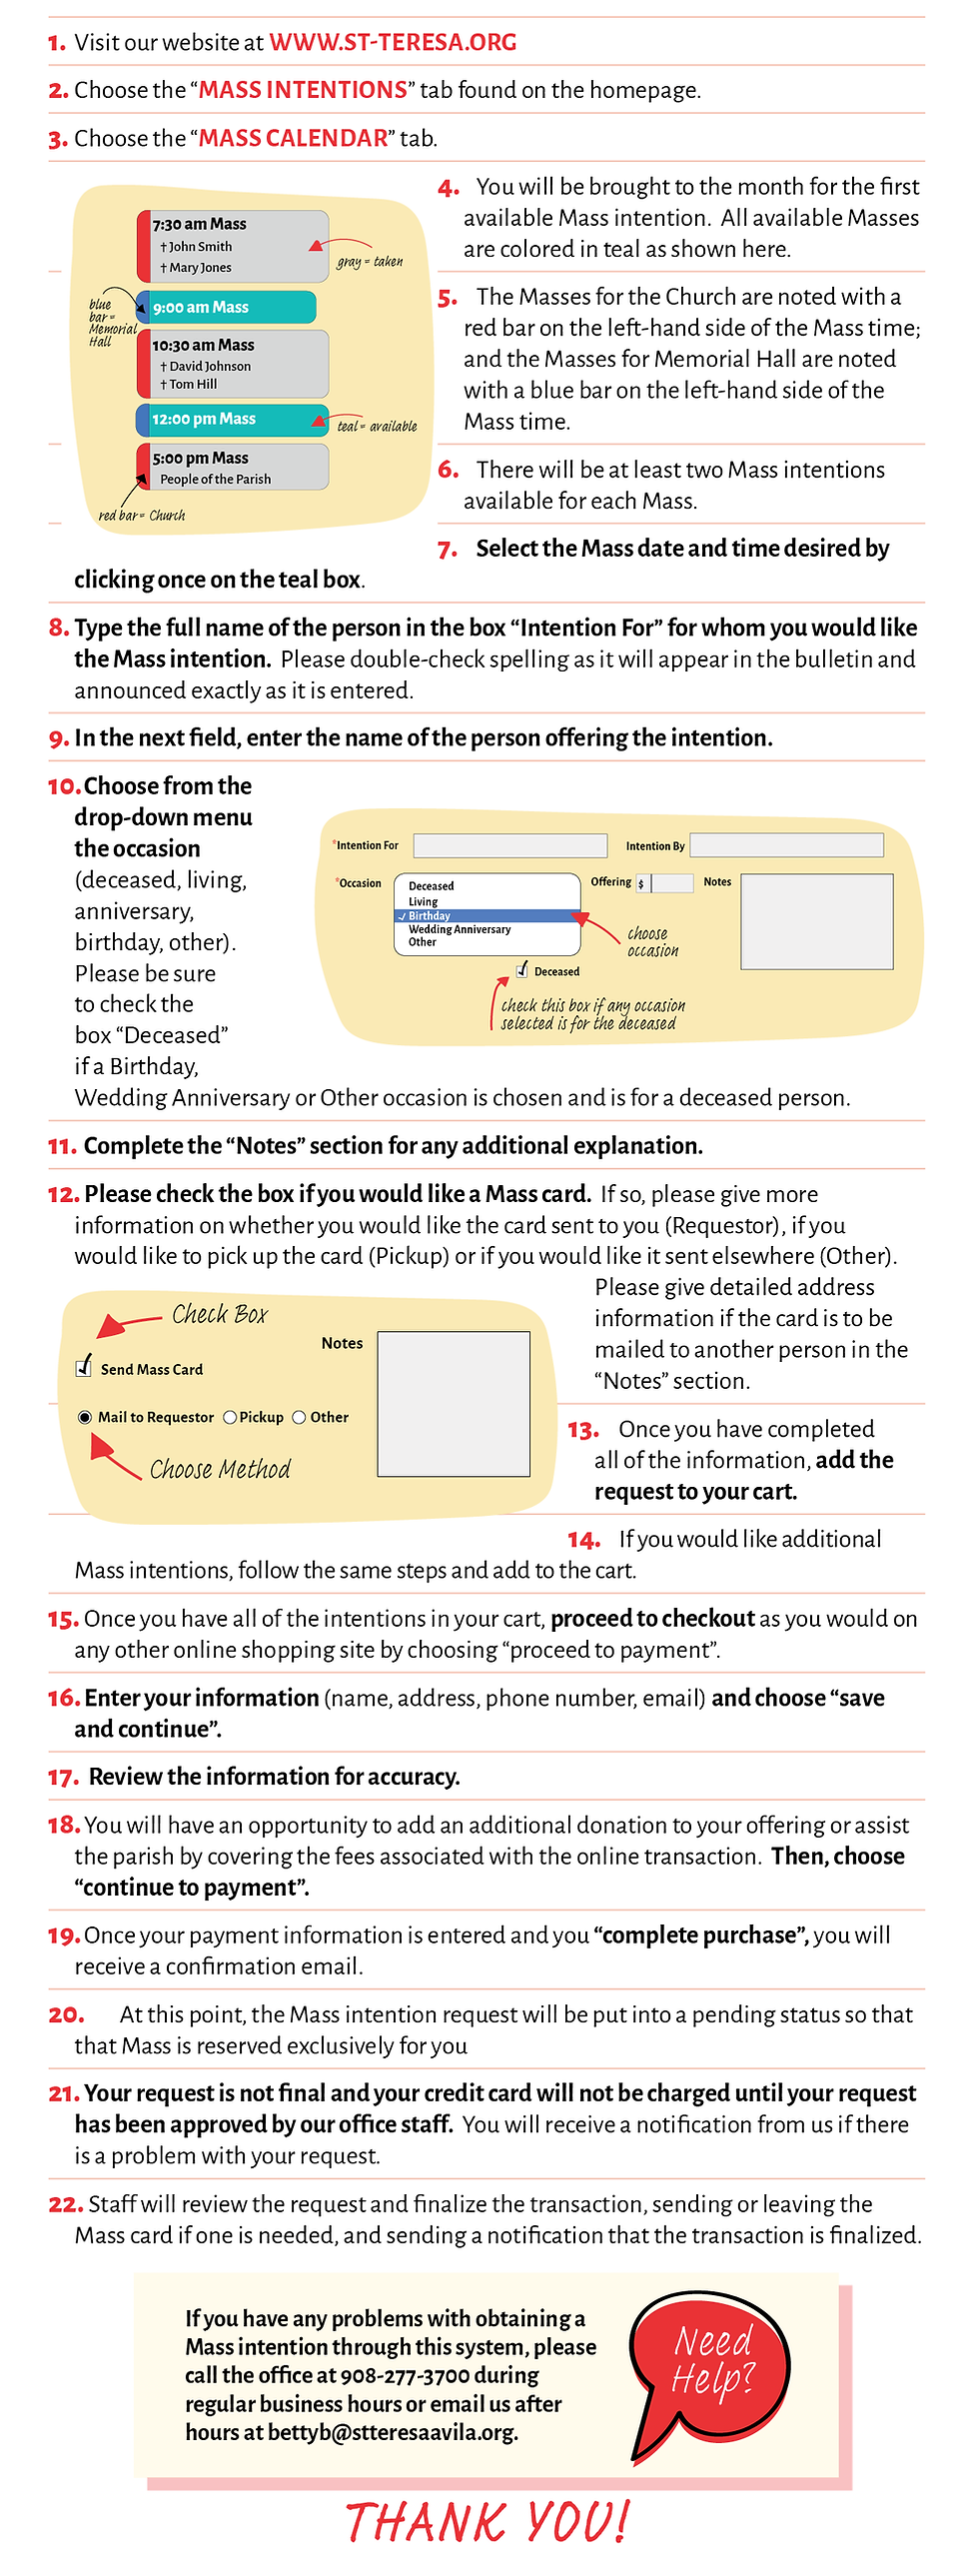 MIO-Web-instructions.png